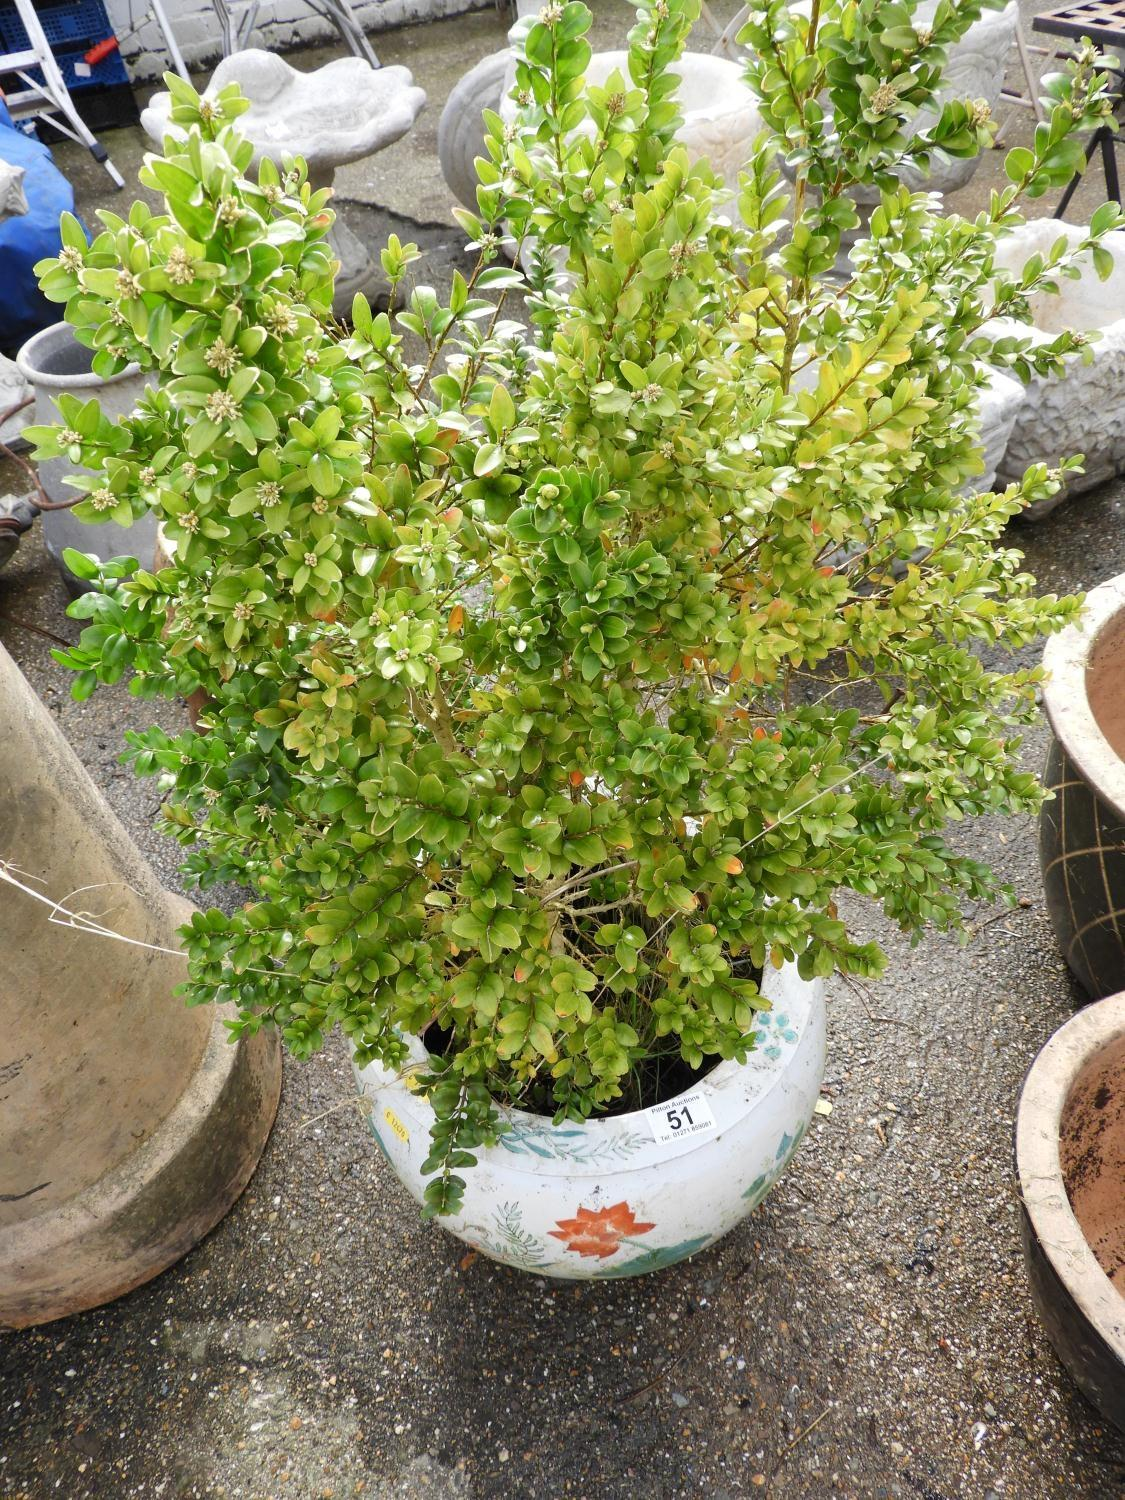 Lot 51 - Glazed Chinese Pot and Contents - Shrub